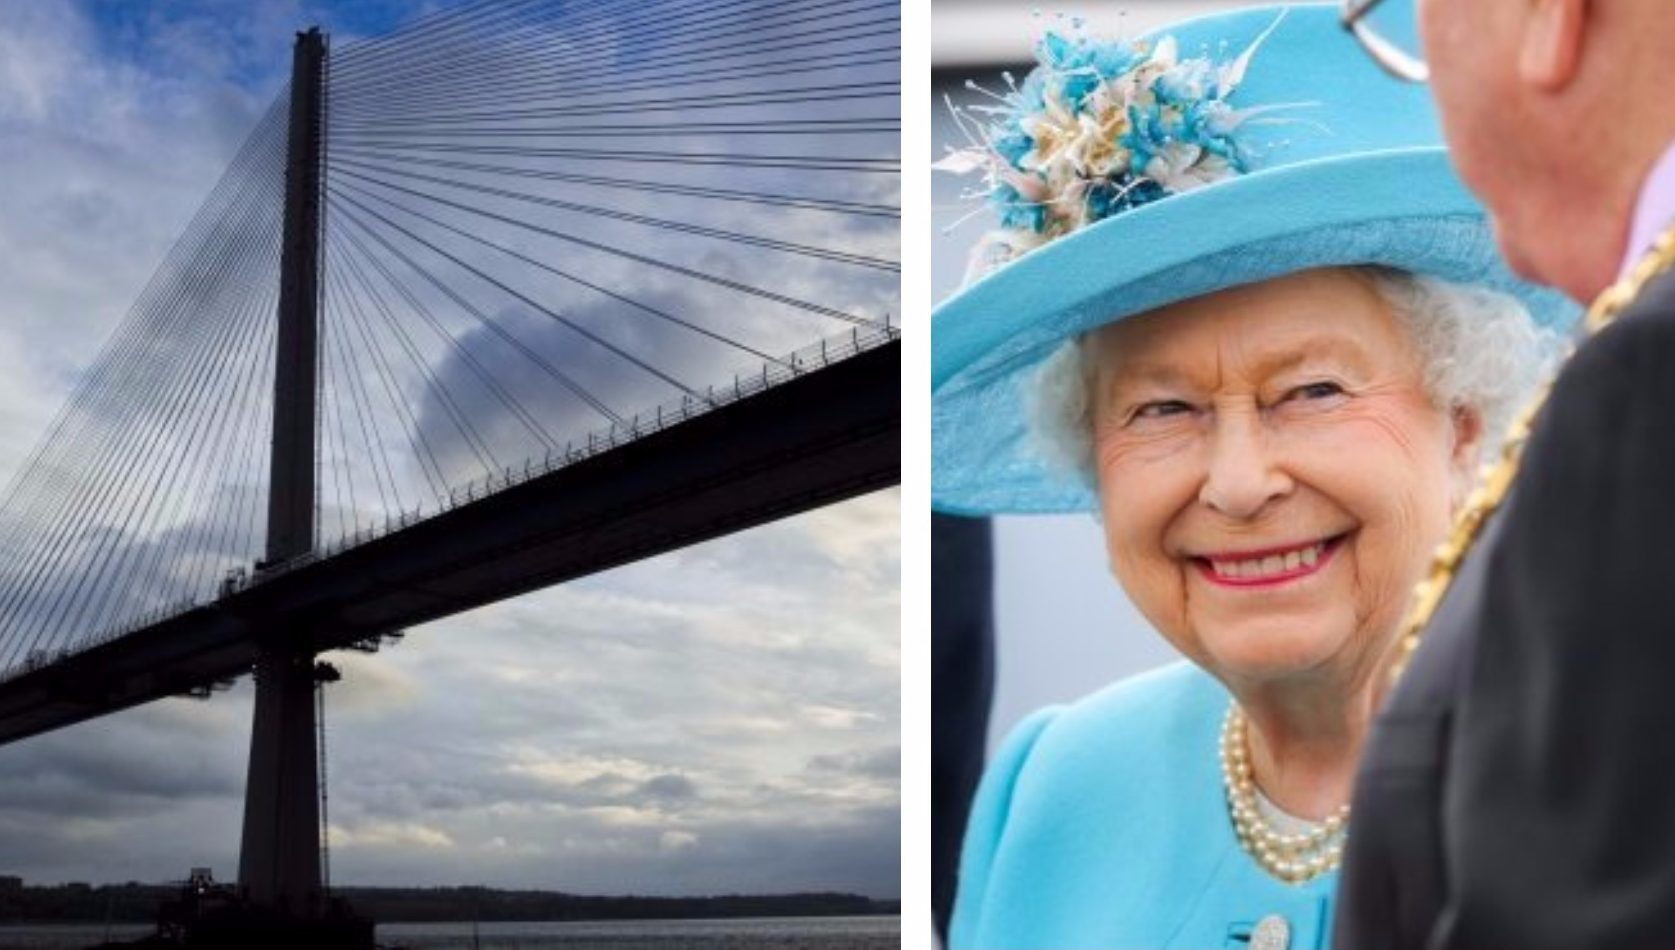 The Queen will open the Queensferry Crossing.